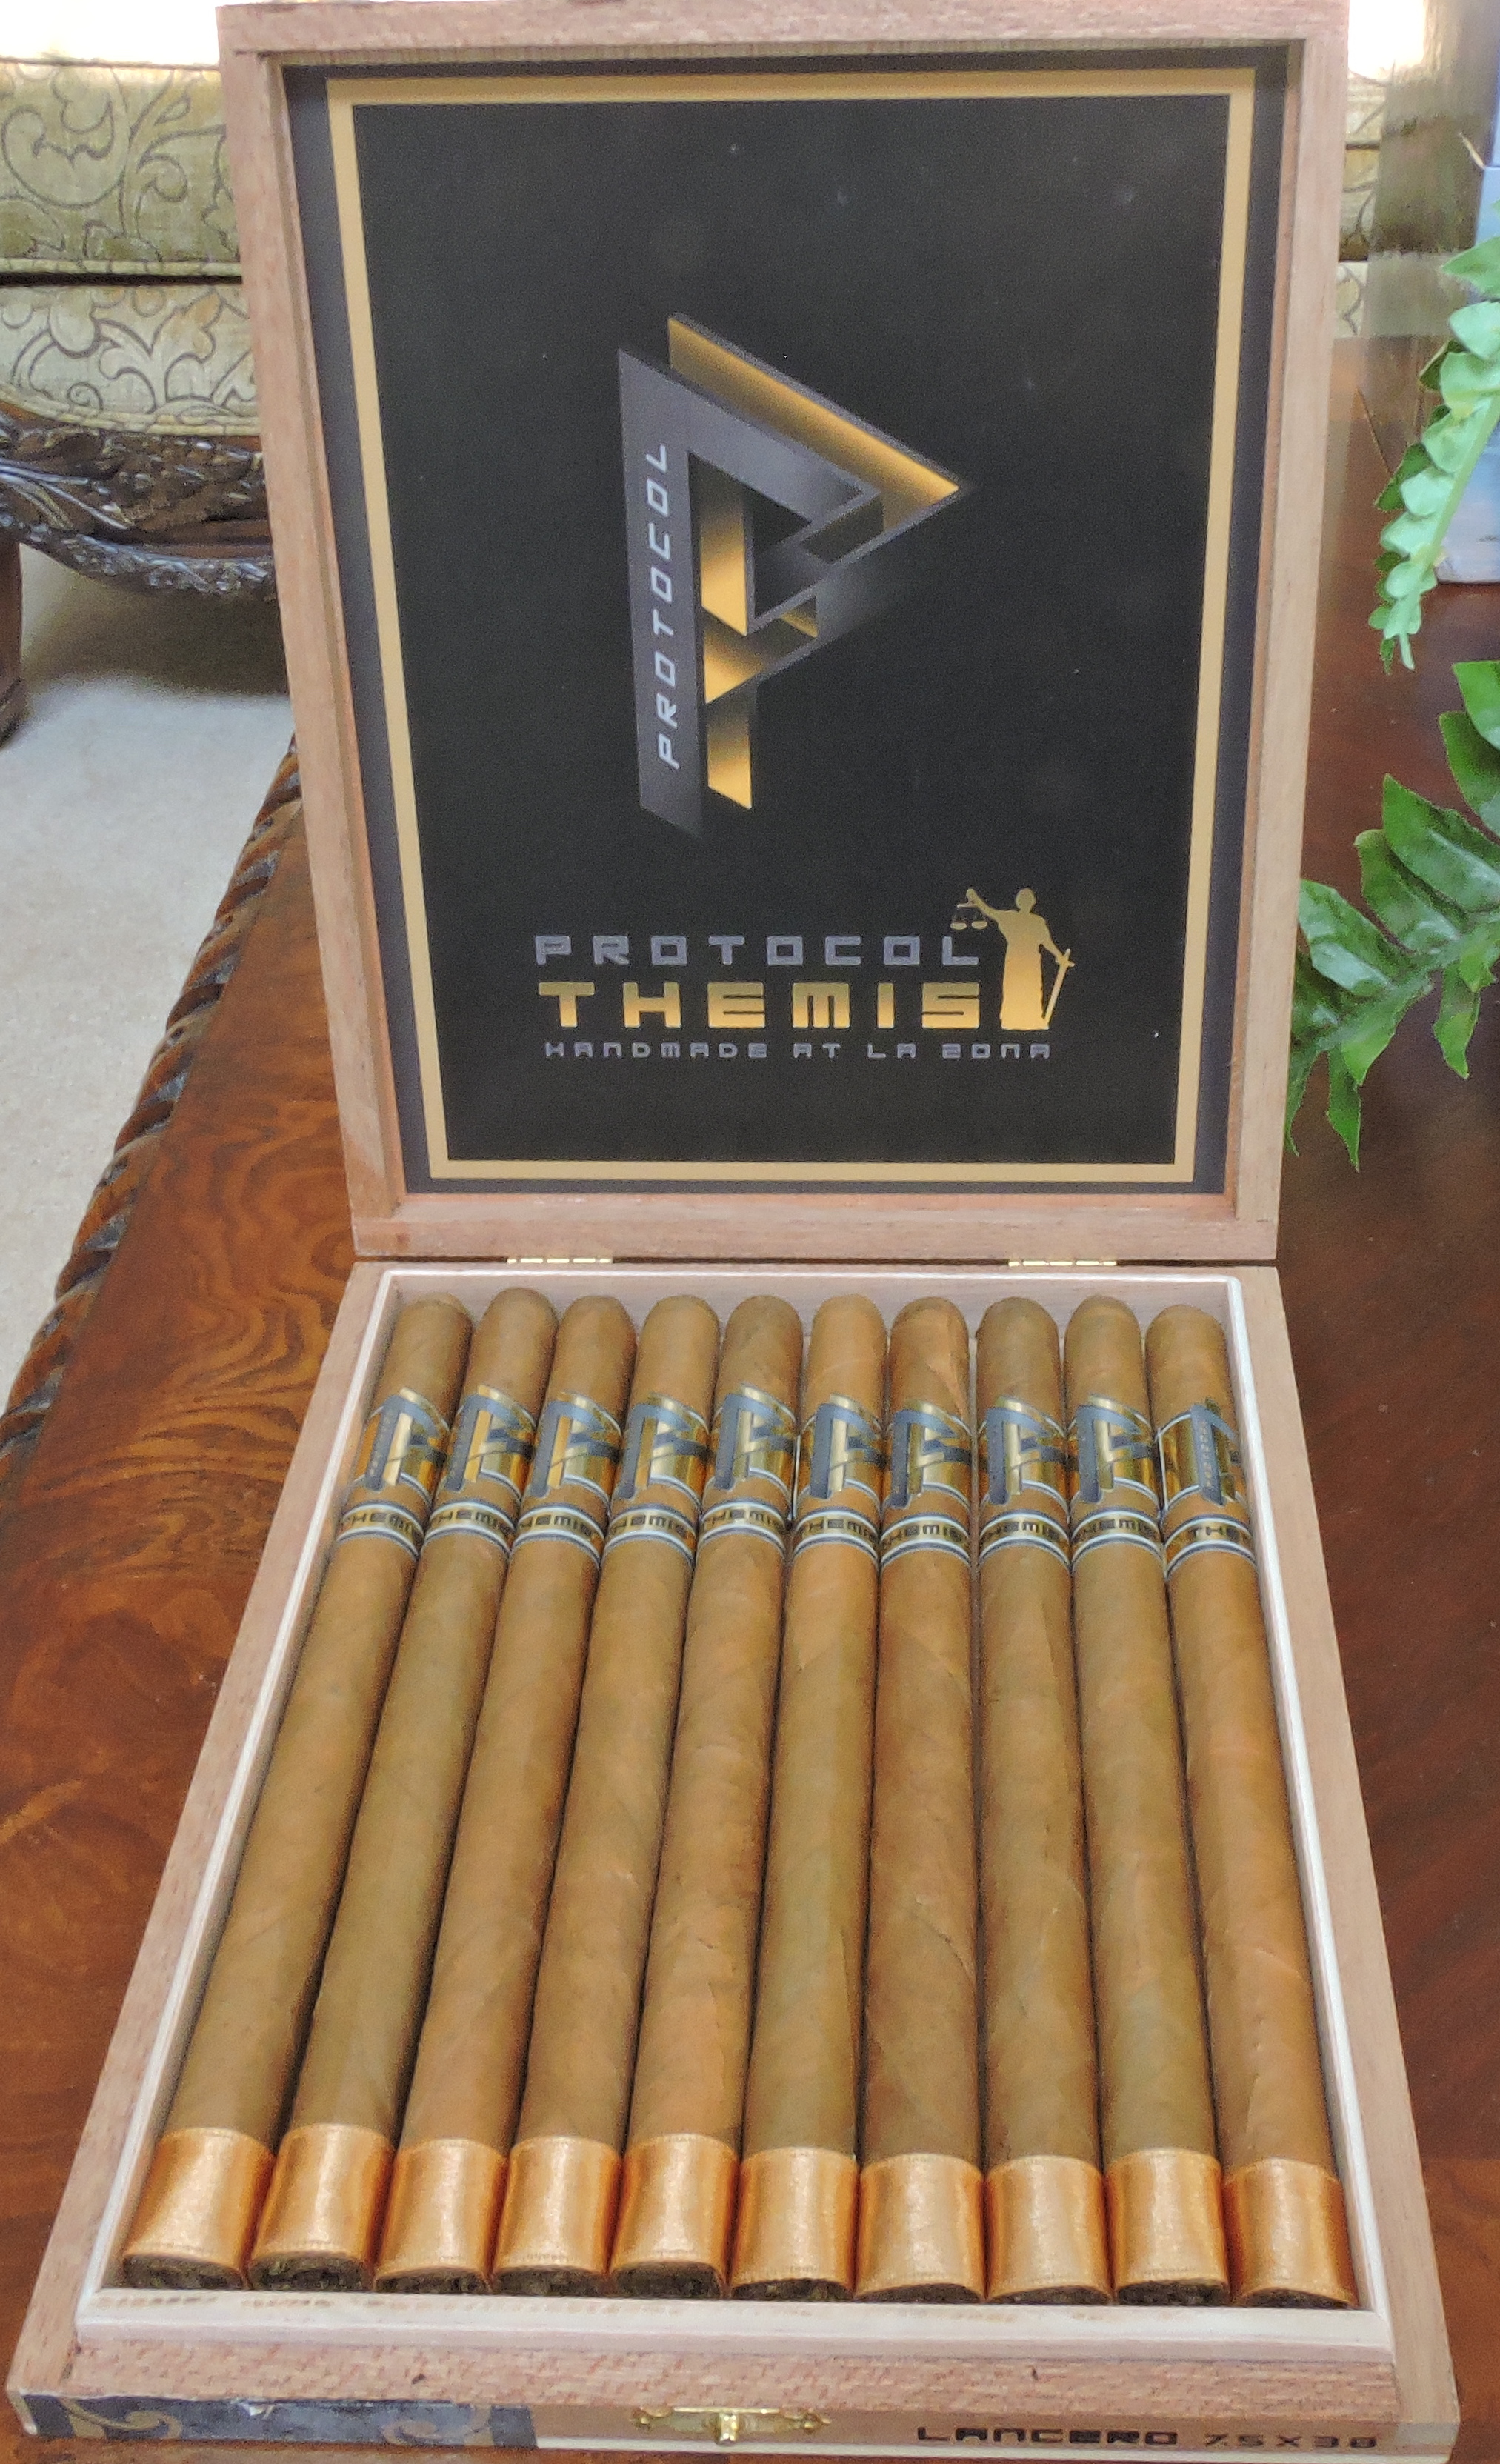 Protocol Themis Lancero - Open Box